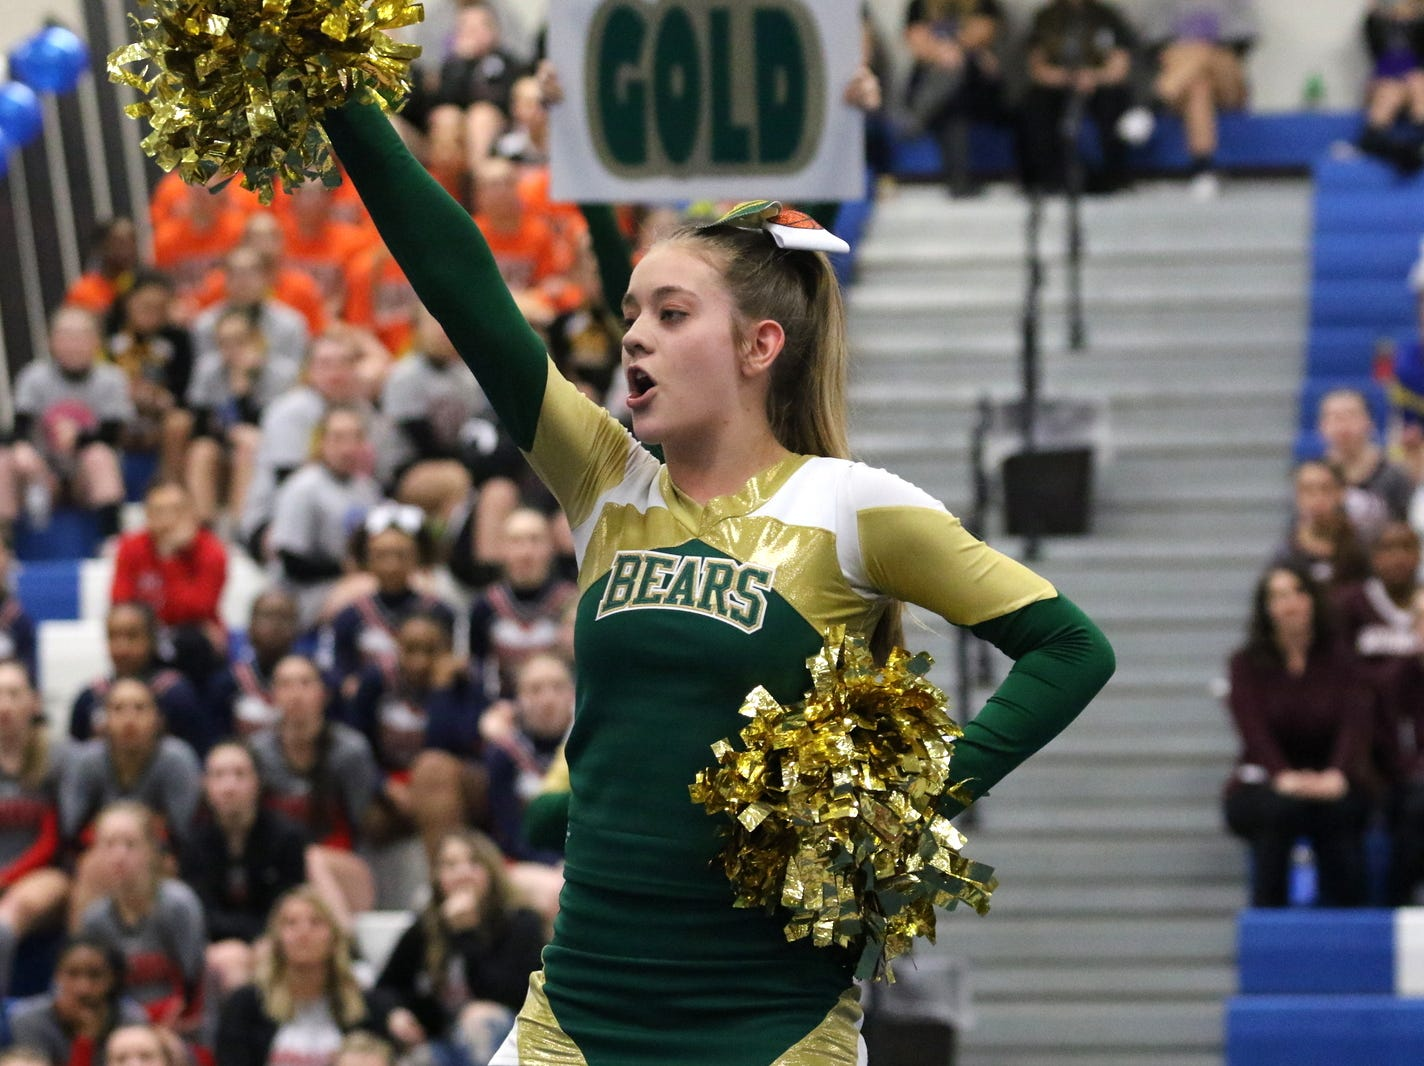 Vestal junior varsity cheerleaders compete at the STAC Winter Cheer Championships on Feb. 16, 2019 at Horseheads Middle School.